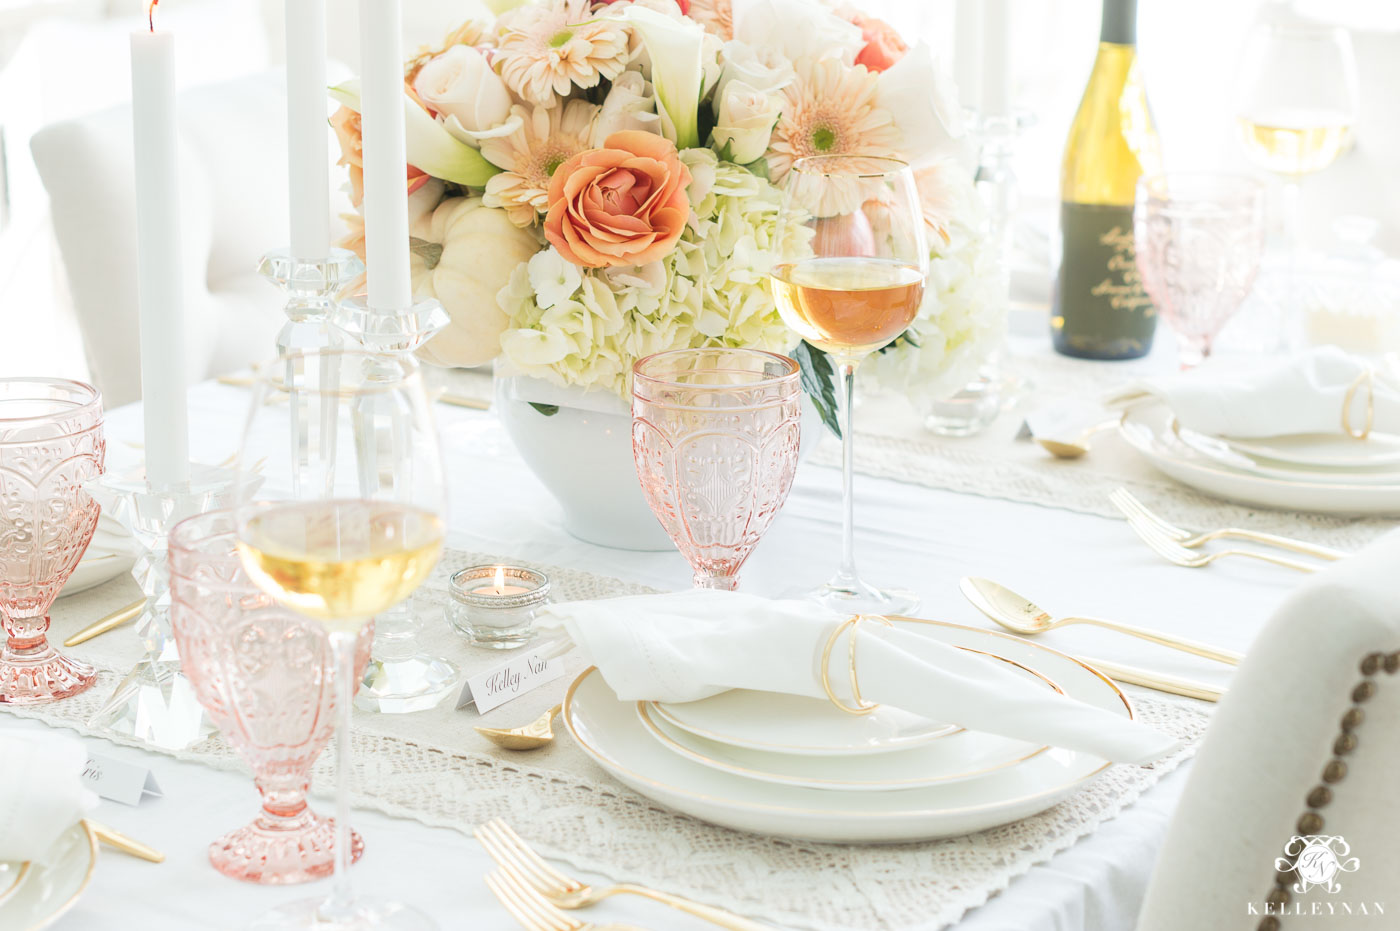 Thanksgiving Dinner Table Ideas and Decorations